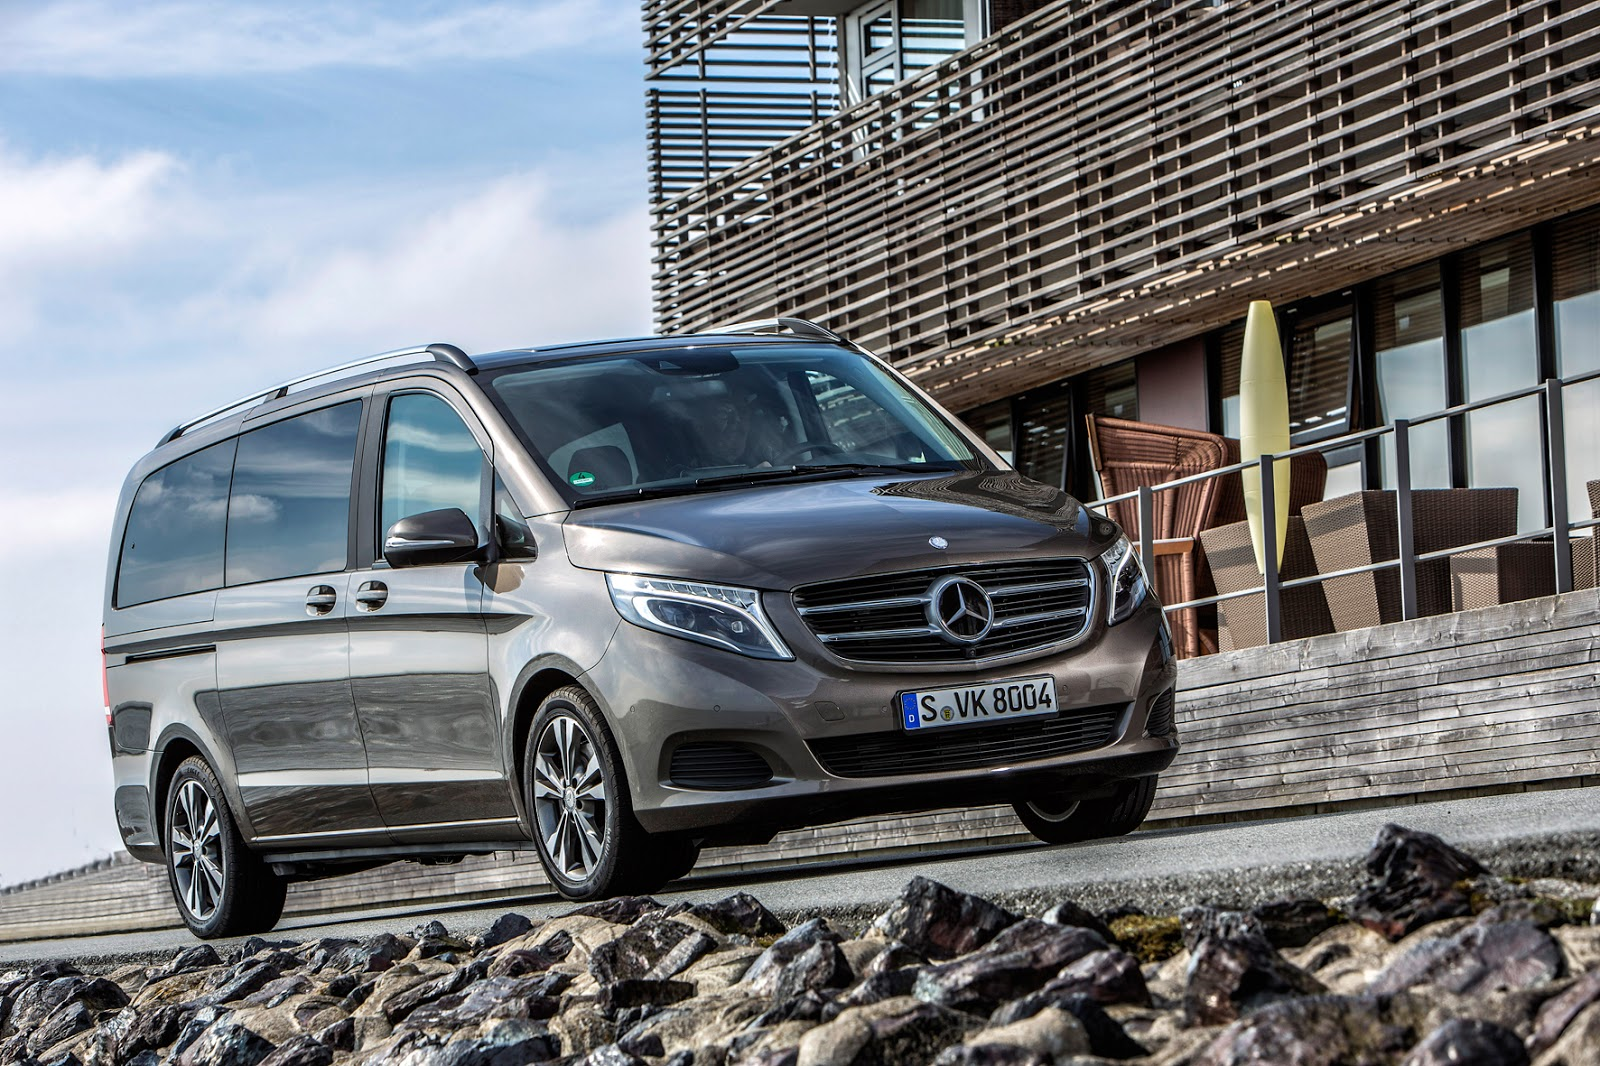 Luxury Family Vehicles: Mercedes-Benz V-Class, The Ultimate Luxury Family Car